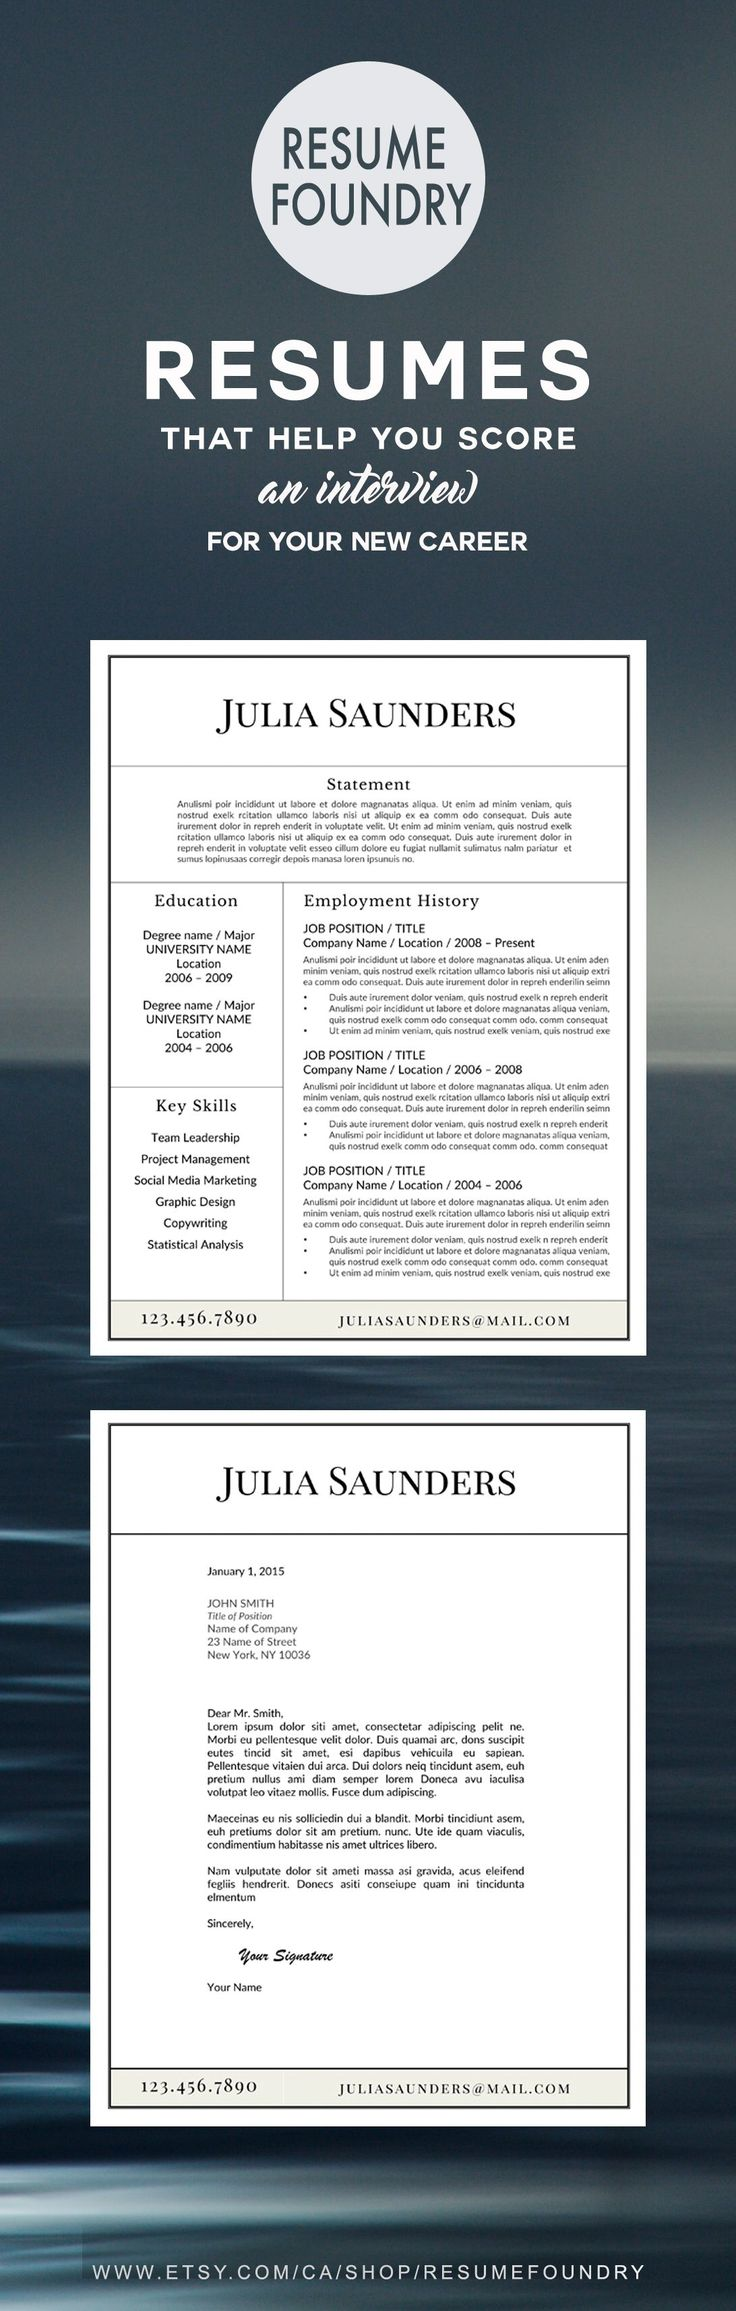 Professionally designed resume template For use with